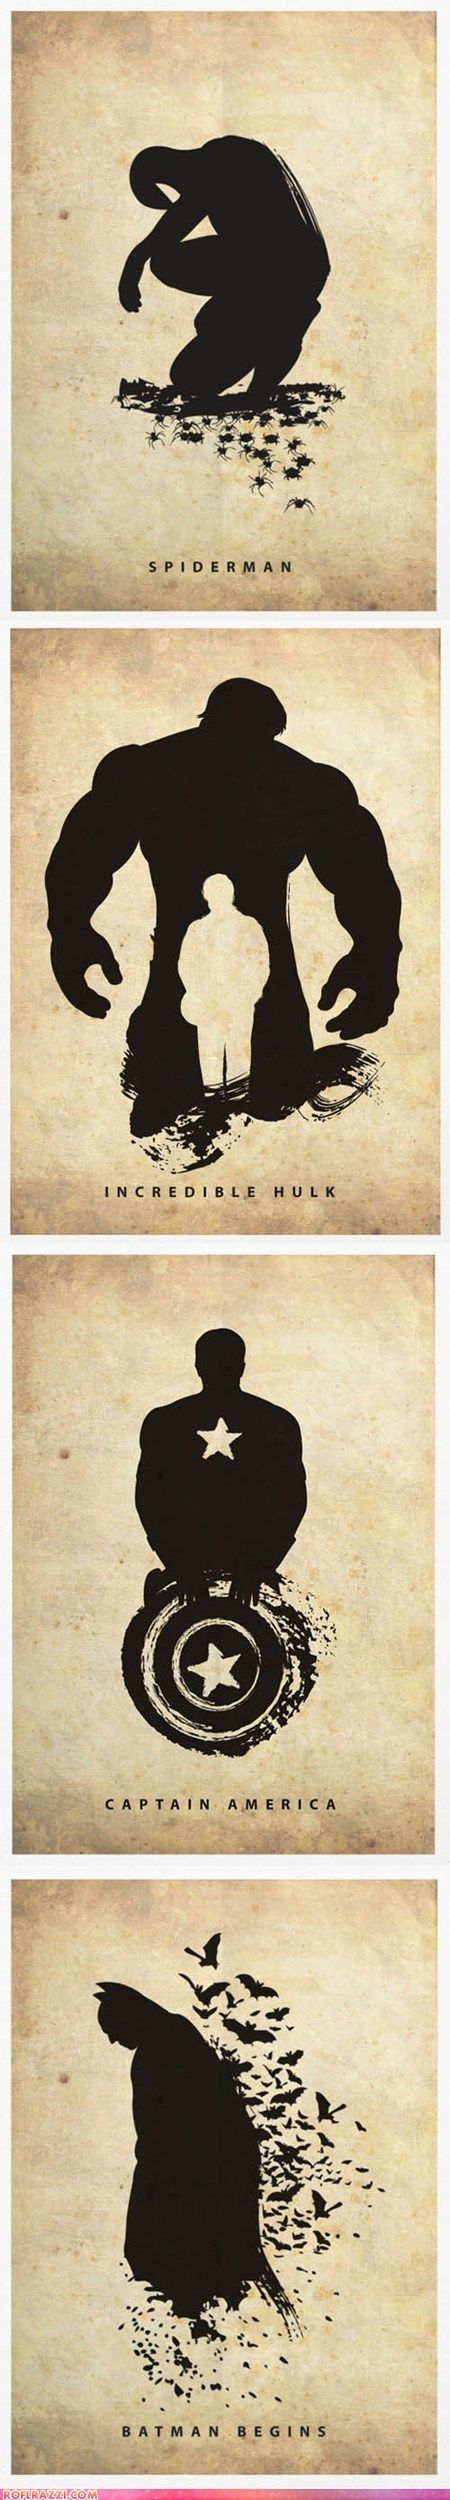 Interesting poster series by Marcus. The only one i really like is the batman begins one.